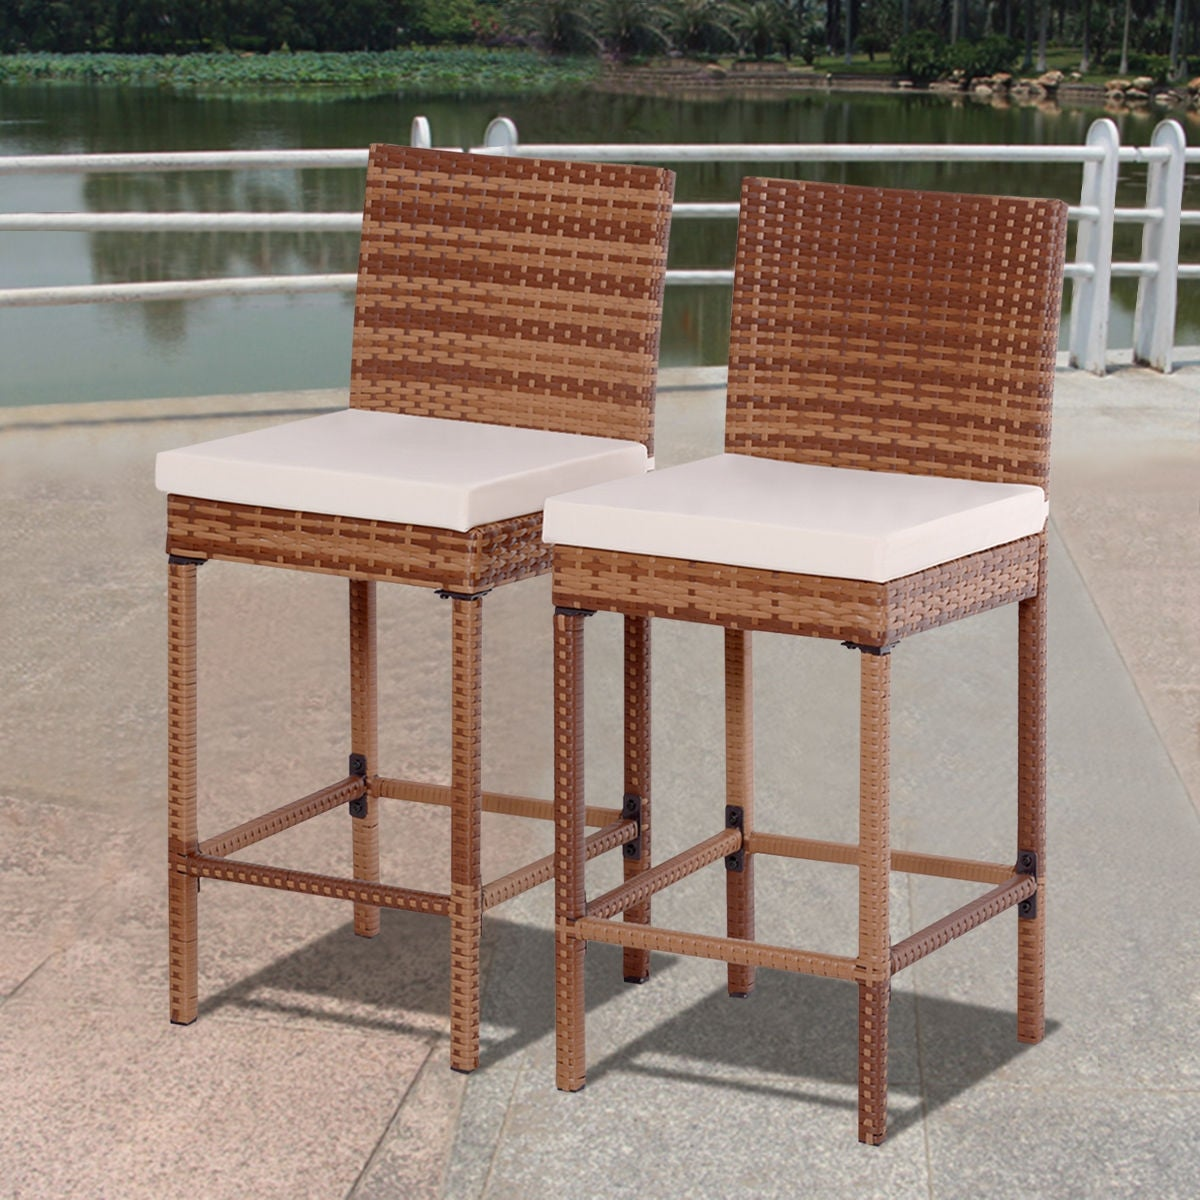 Shop Costway Set Of 2 Patio Rattan Bar Stool Chair Steel Frame Wicker  Barstool W/Cushions   Free Shipping Today   Overstock.com   17056618